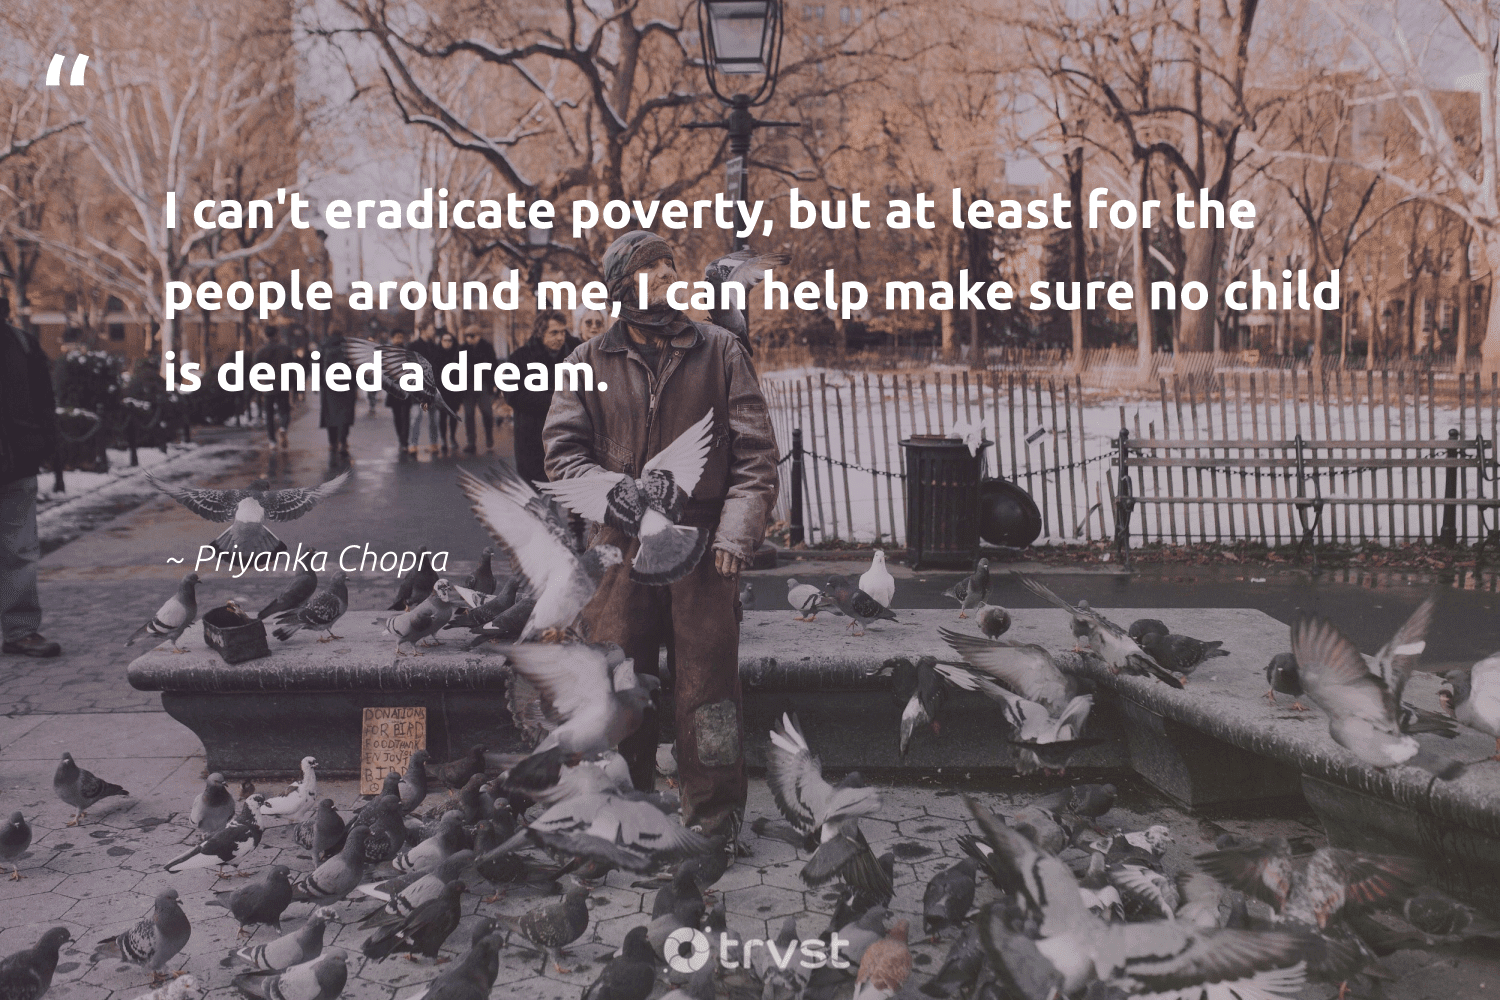 """""""I can't eradicate poverty, but at least for the people around me, I can help make sure no child is denied a dream.""""  - Priyanka Chopra #trvst #quotes #poverty #endpoverty #inclusion #weareallone #ecoconscious #equalrights #sustainablefutures #bethechange #makeadifference #equalopportunity"""